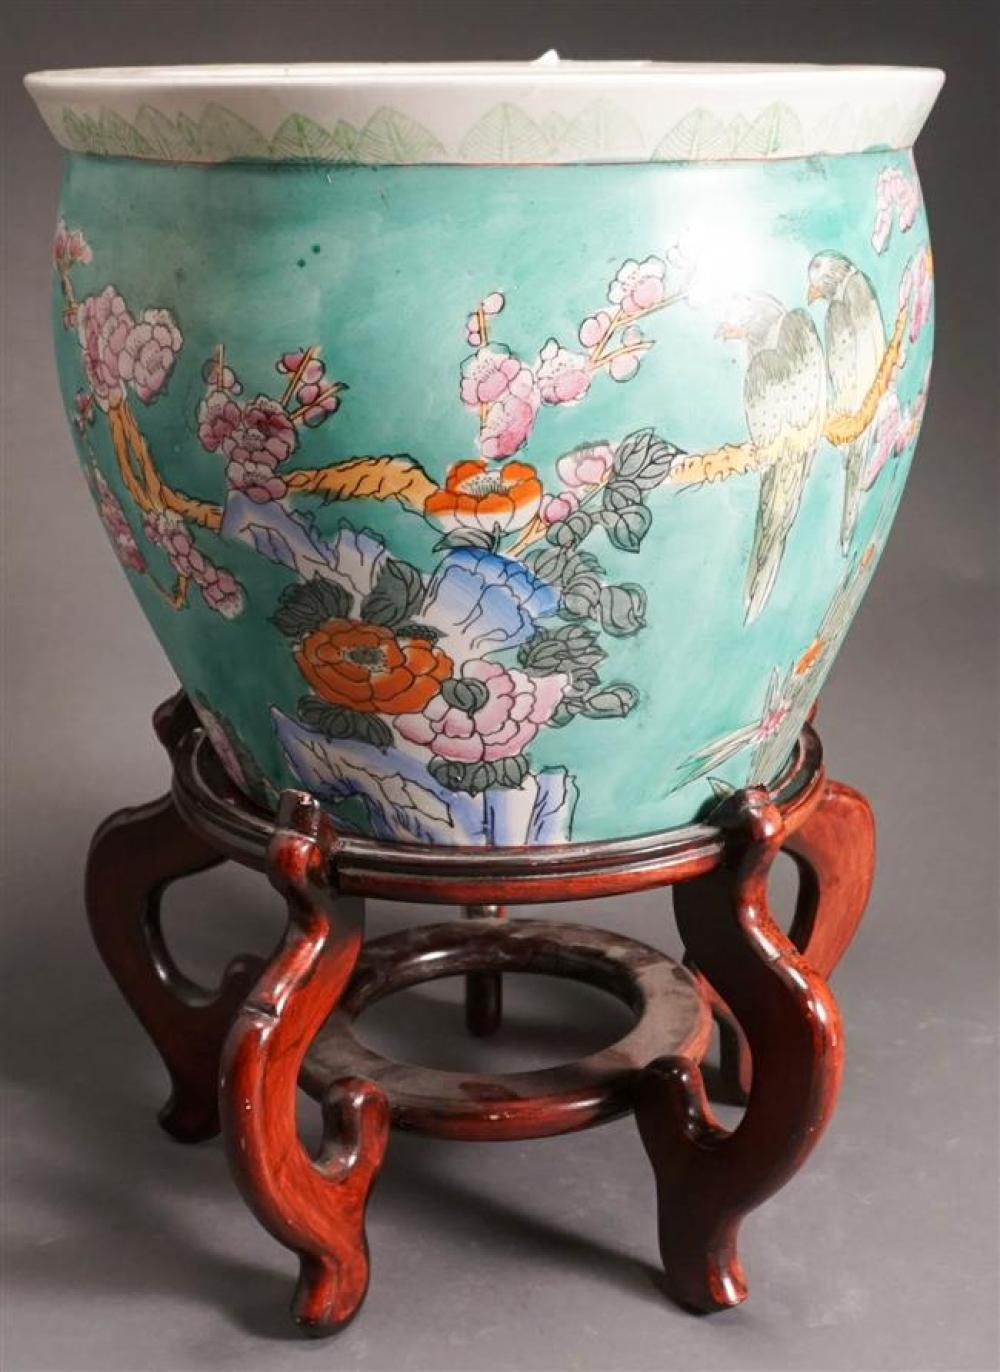 Chinese Bird and Flower Decorated Fish Bowl on Hardwood Stand, H: 11-1/4; D: 13-3/4 inches